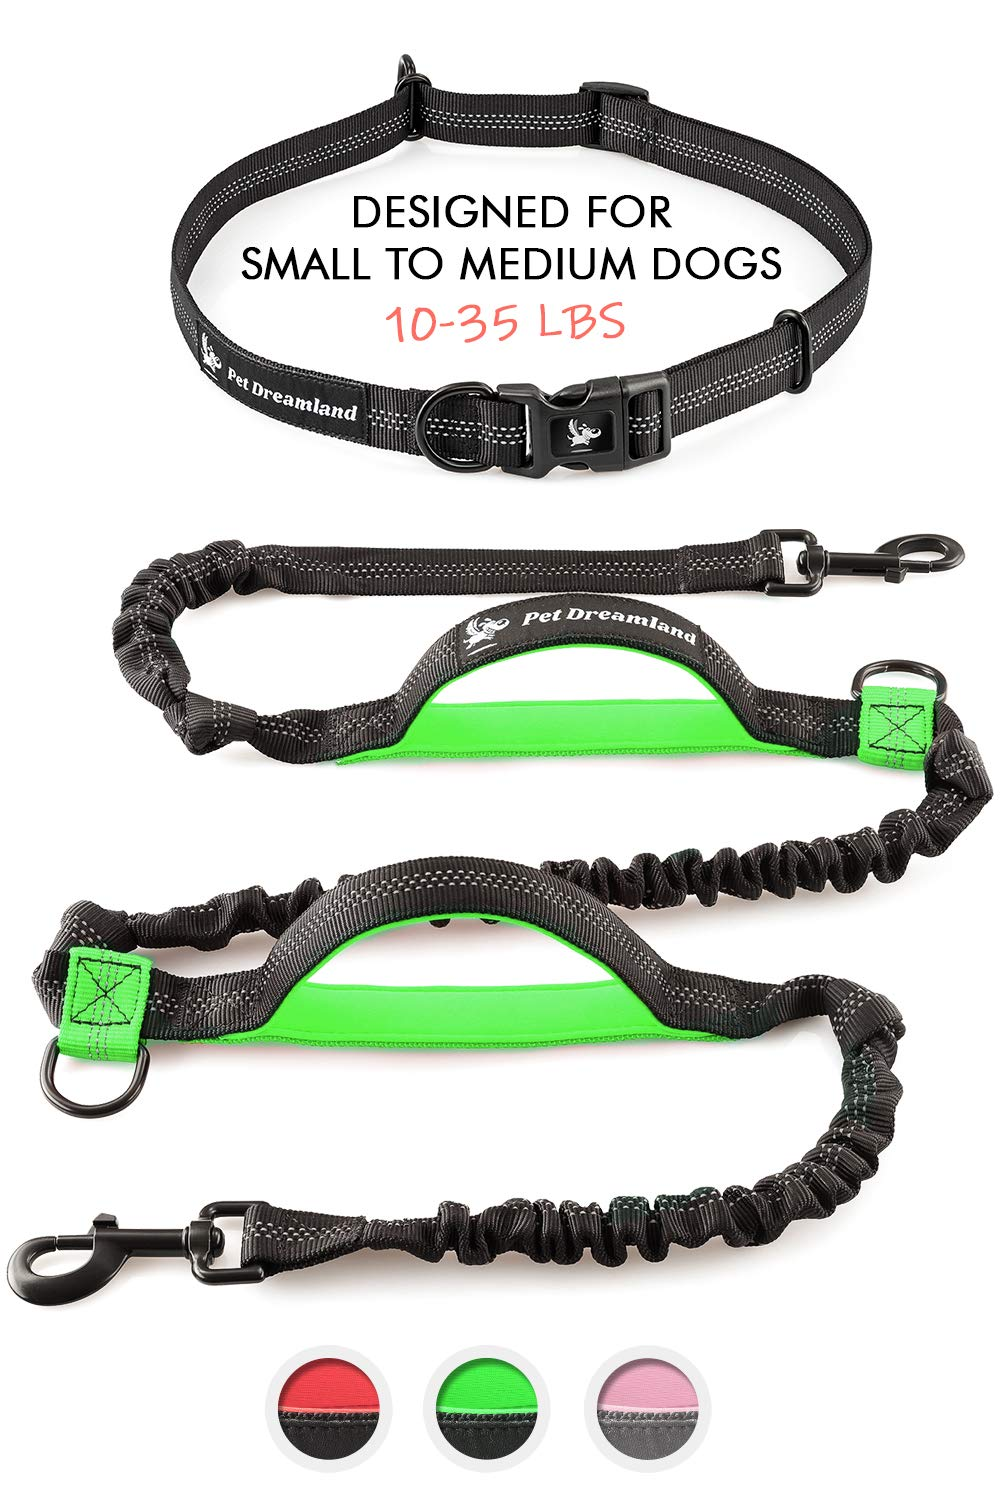 Pet Dreamland Hands Free Leash for Walking - Medium Dogs Leashes - Retractable Waist Leashes for Small Dogs (Black & Green)